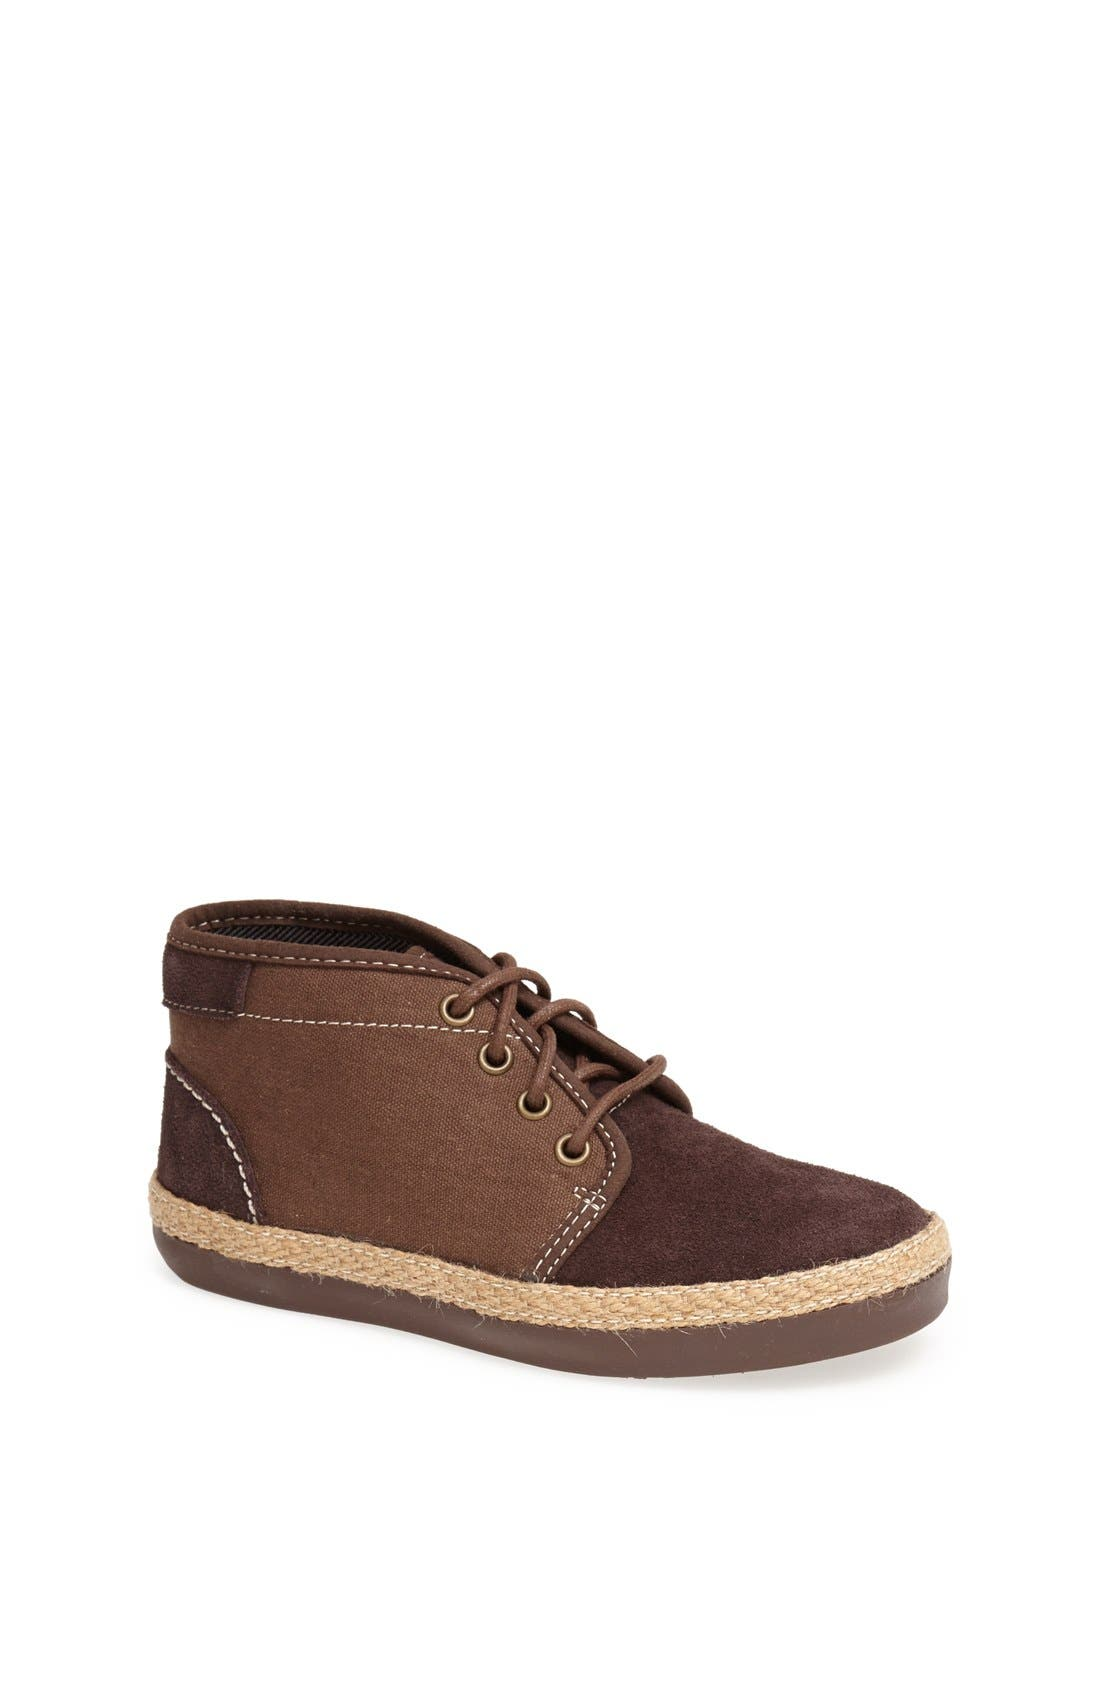 Main Image - UGG® Australia 'Casper' Chukka Boot (Toddler, Little Kid & Big Kid)